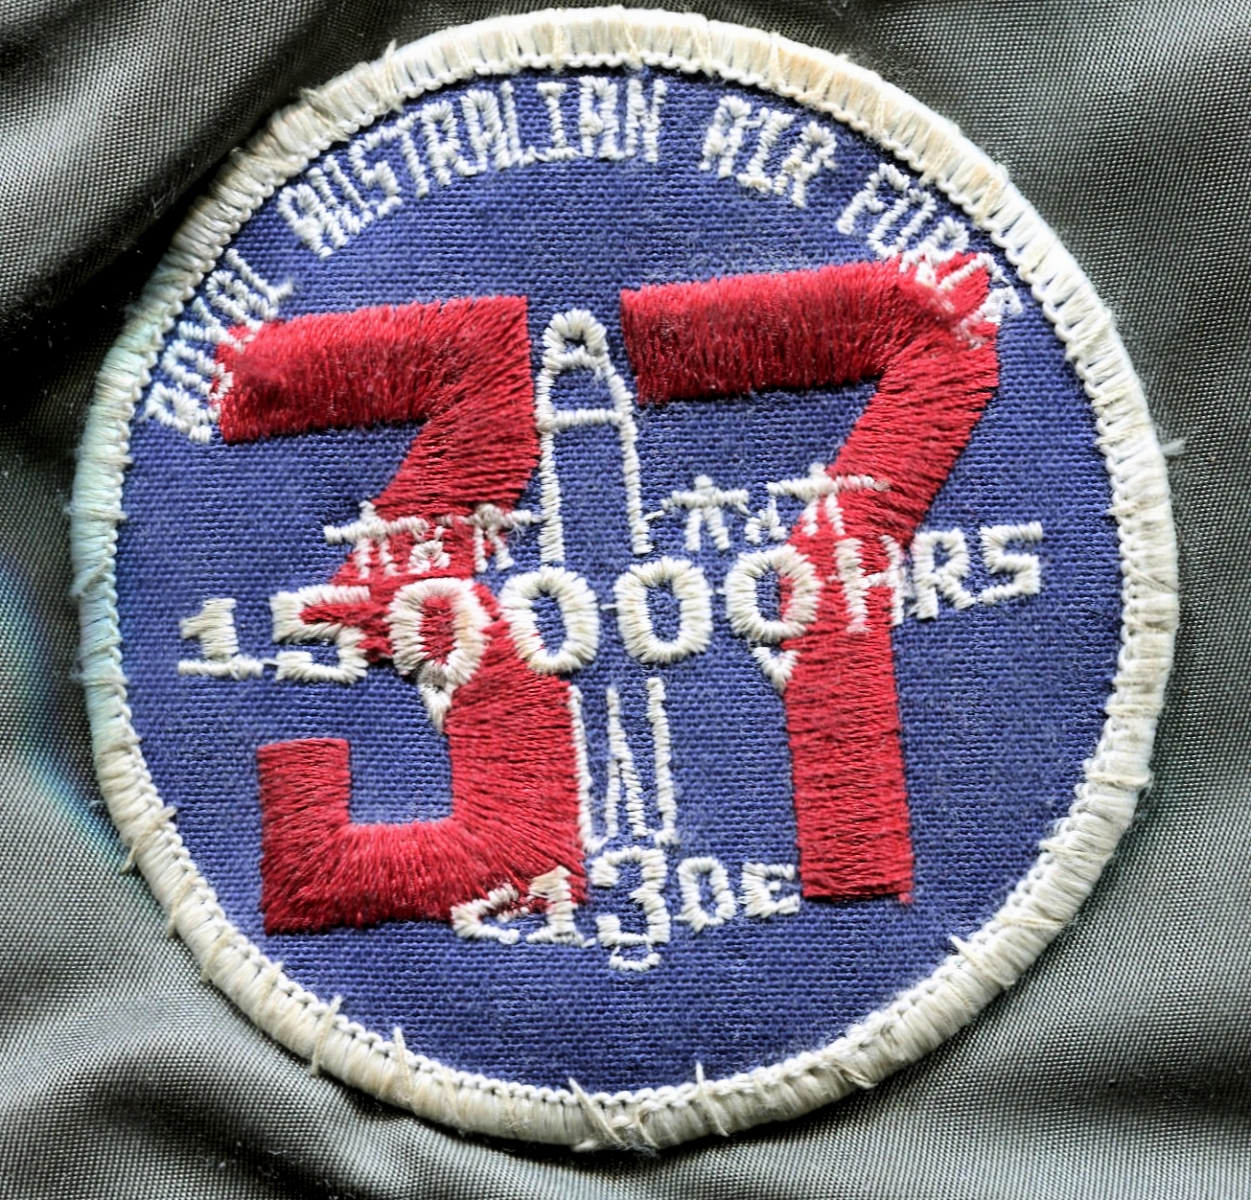 RAAF, Number 37 Squadron (C-130E) 150,000 Accident Free Hours Patch.